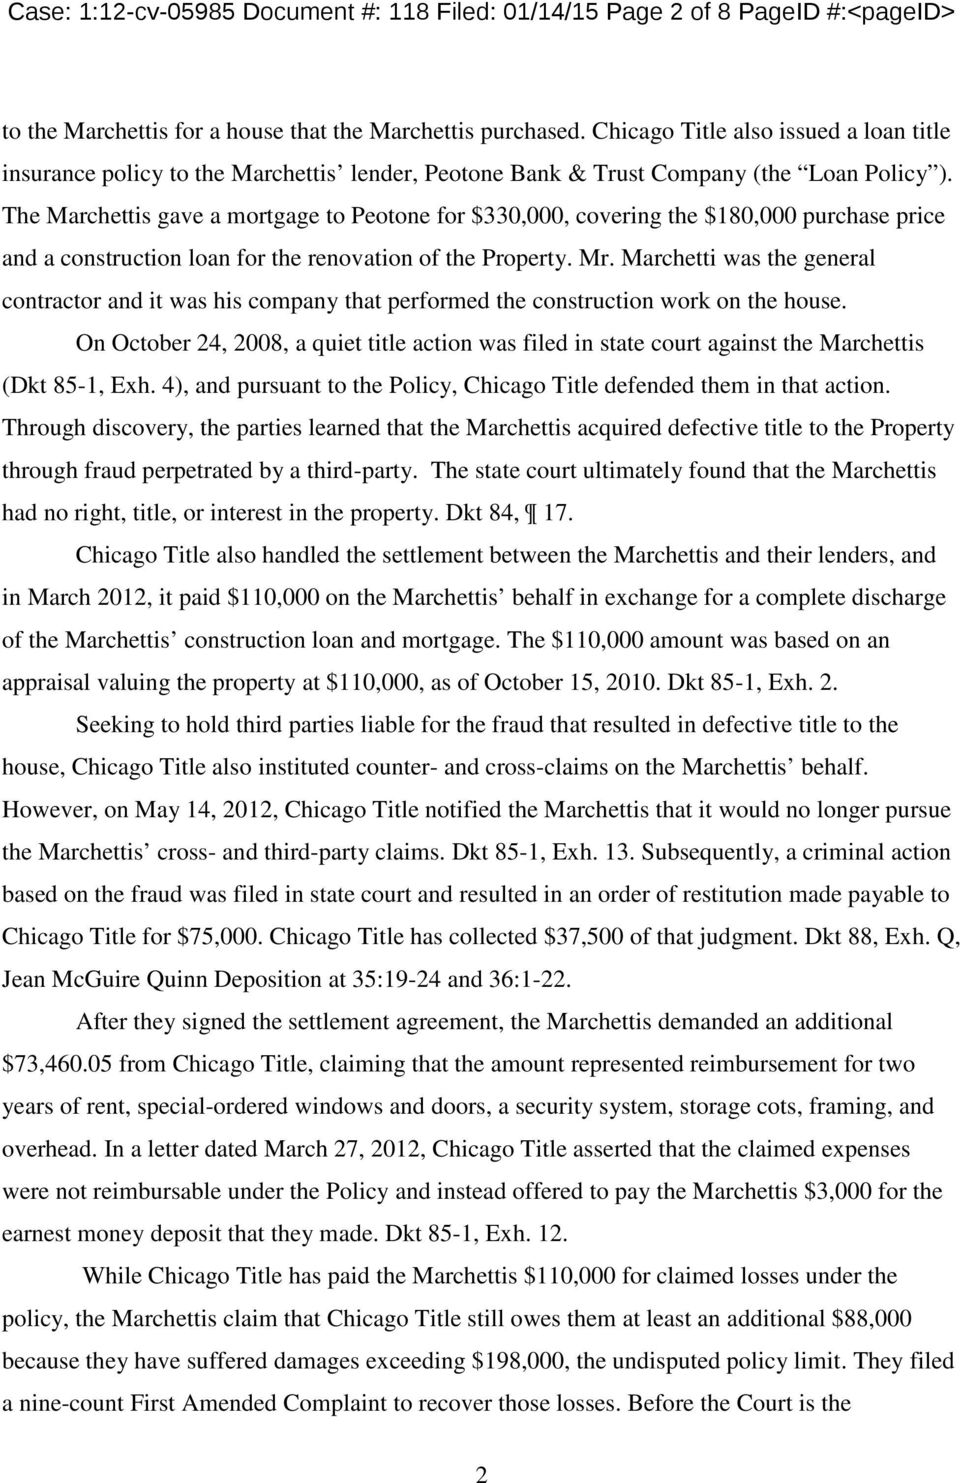 The Marchettis gave a mortgage to Peotone for $330,000, covering the $180,000 purchase price and a construction loan for the renovation of the Property. Mr.